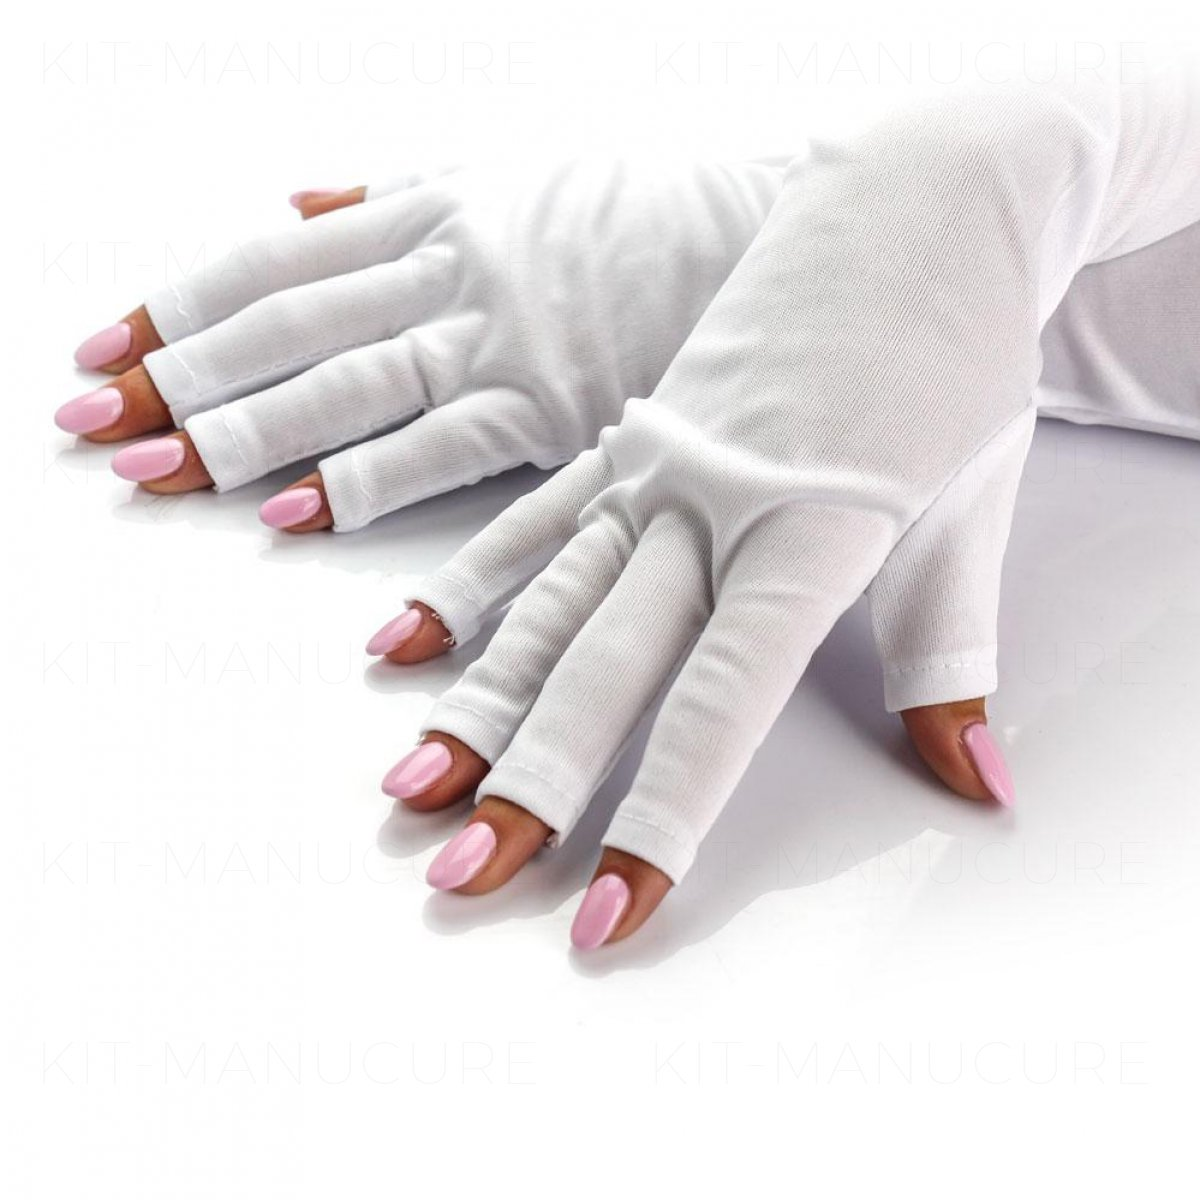 https://www.kit-manucure.com/987-thickbox_default/gants-de-protection-anti-uv-blanc.jpg